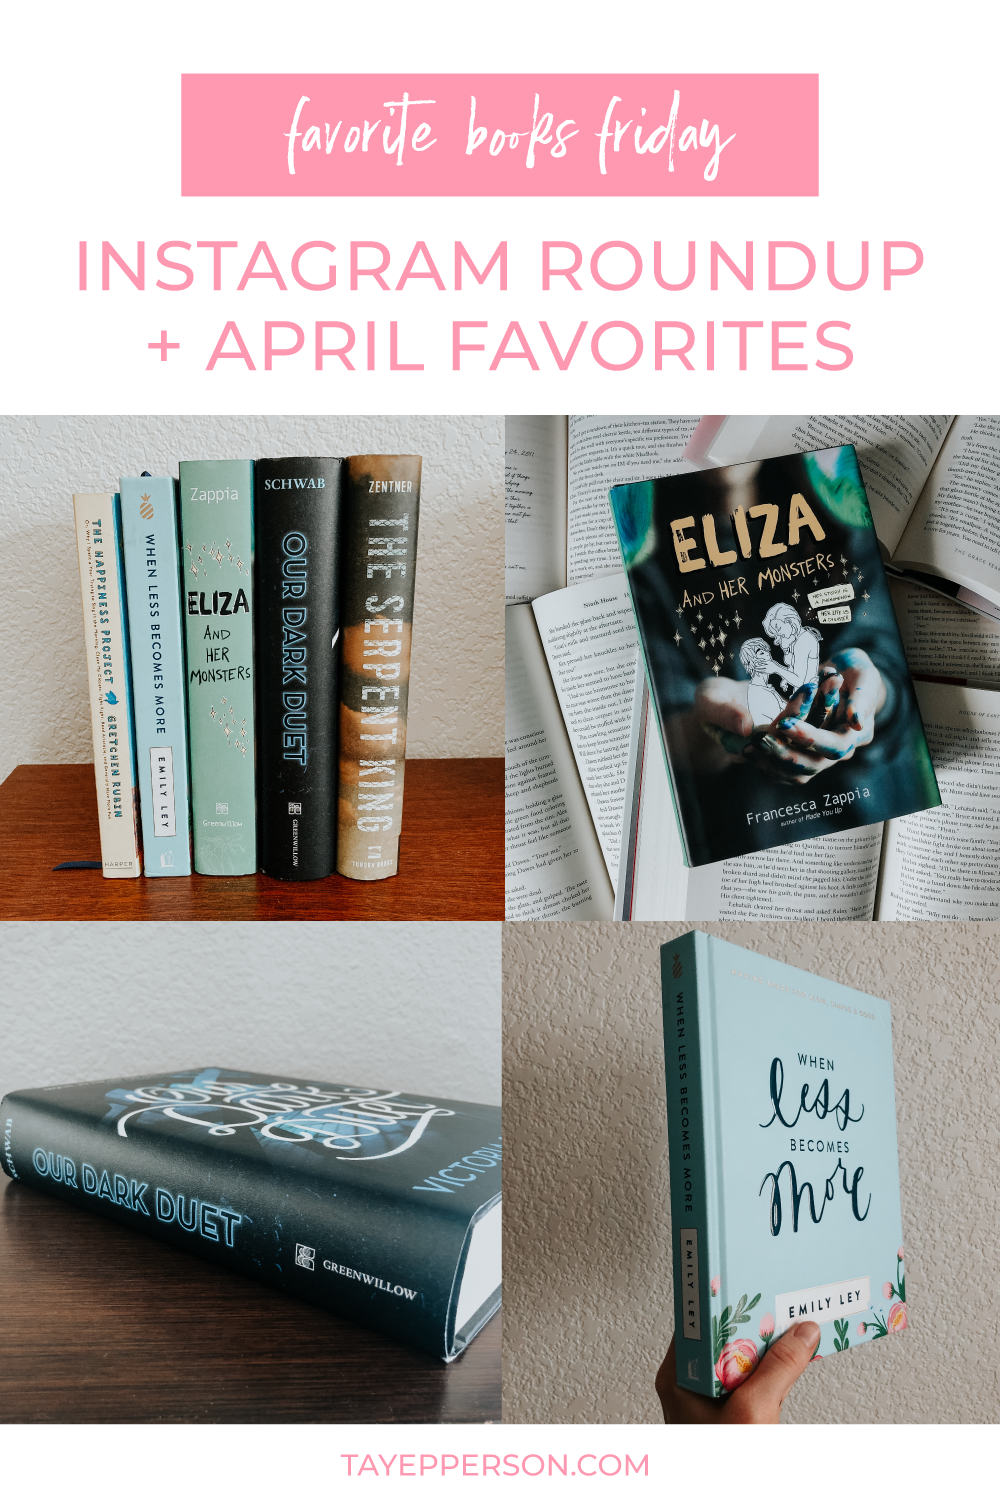 favoirte book friday Instagram roundup.png